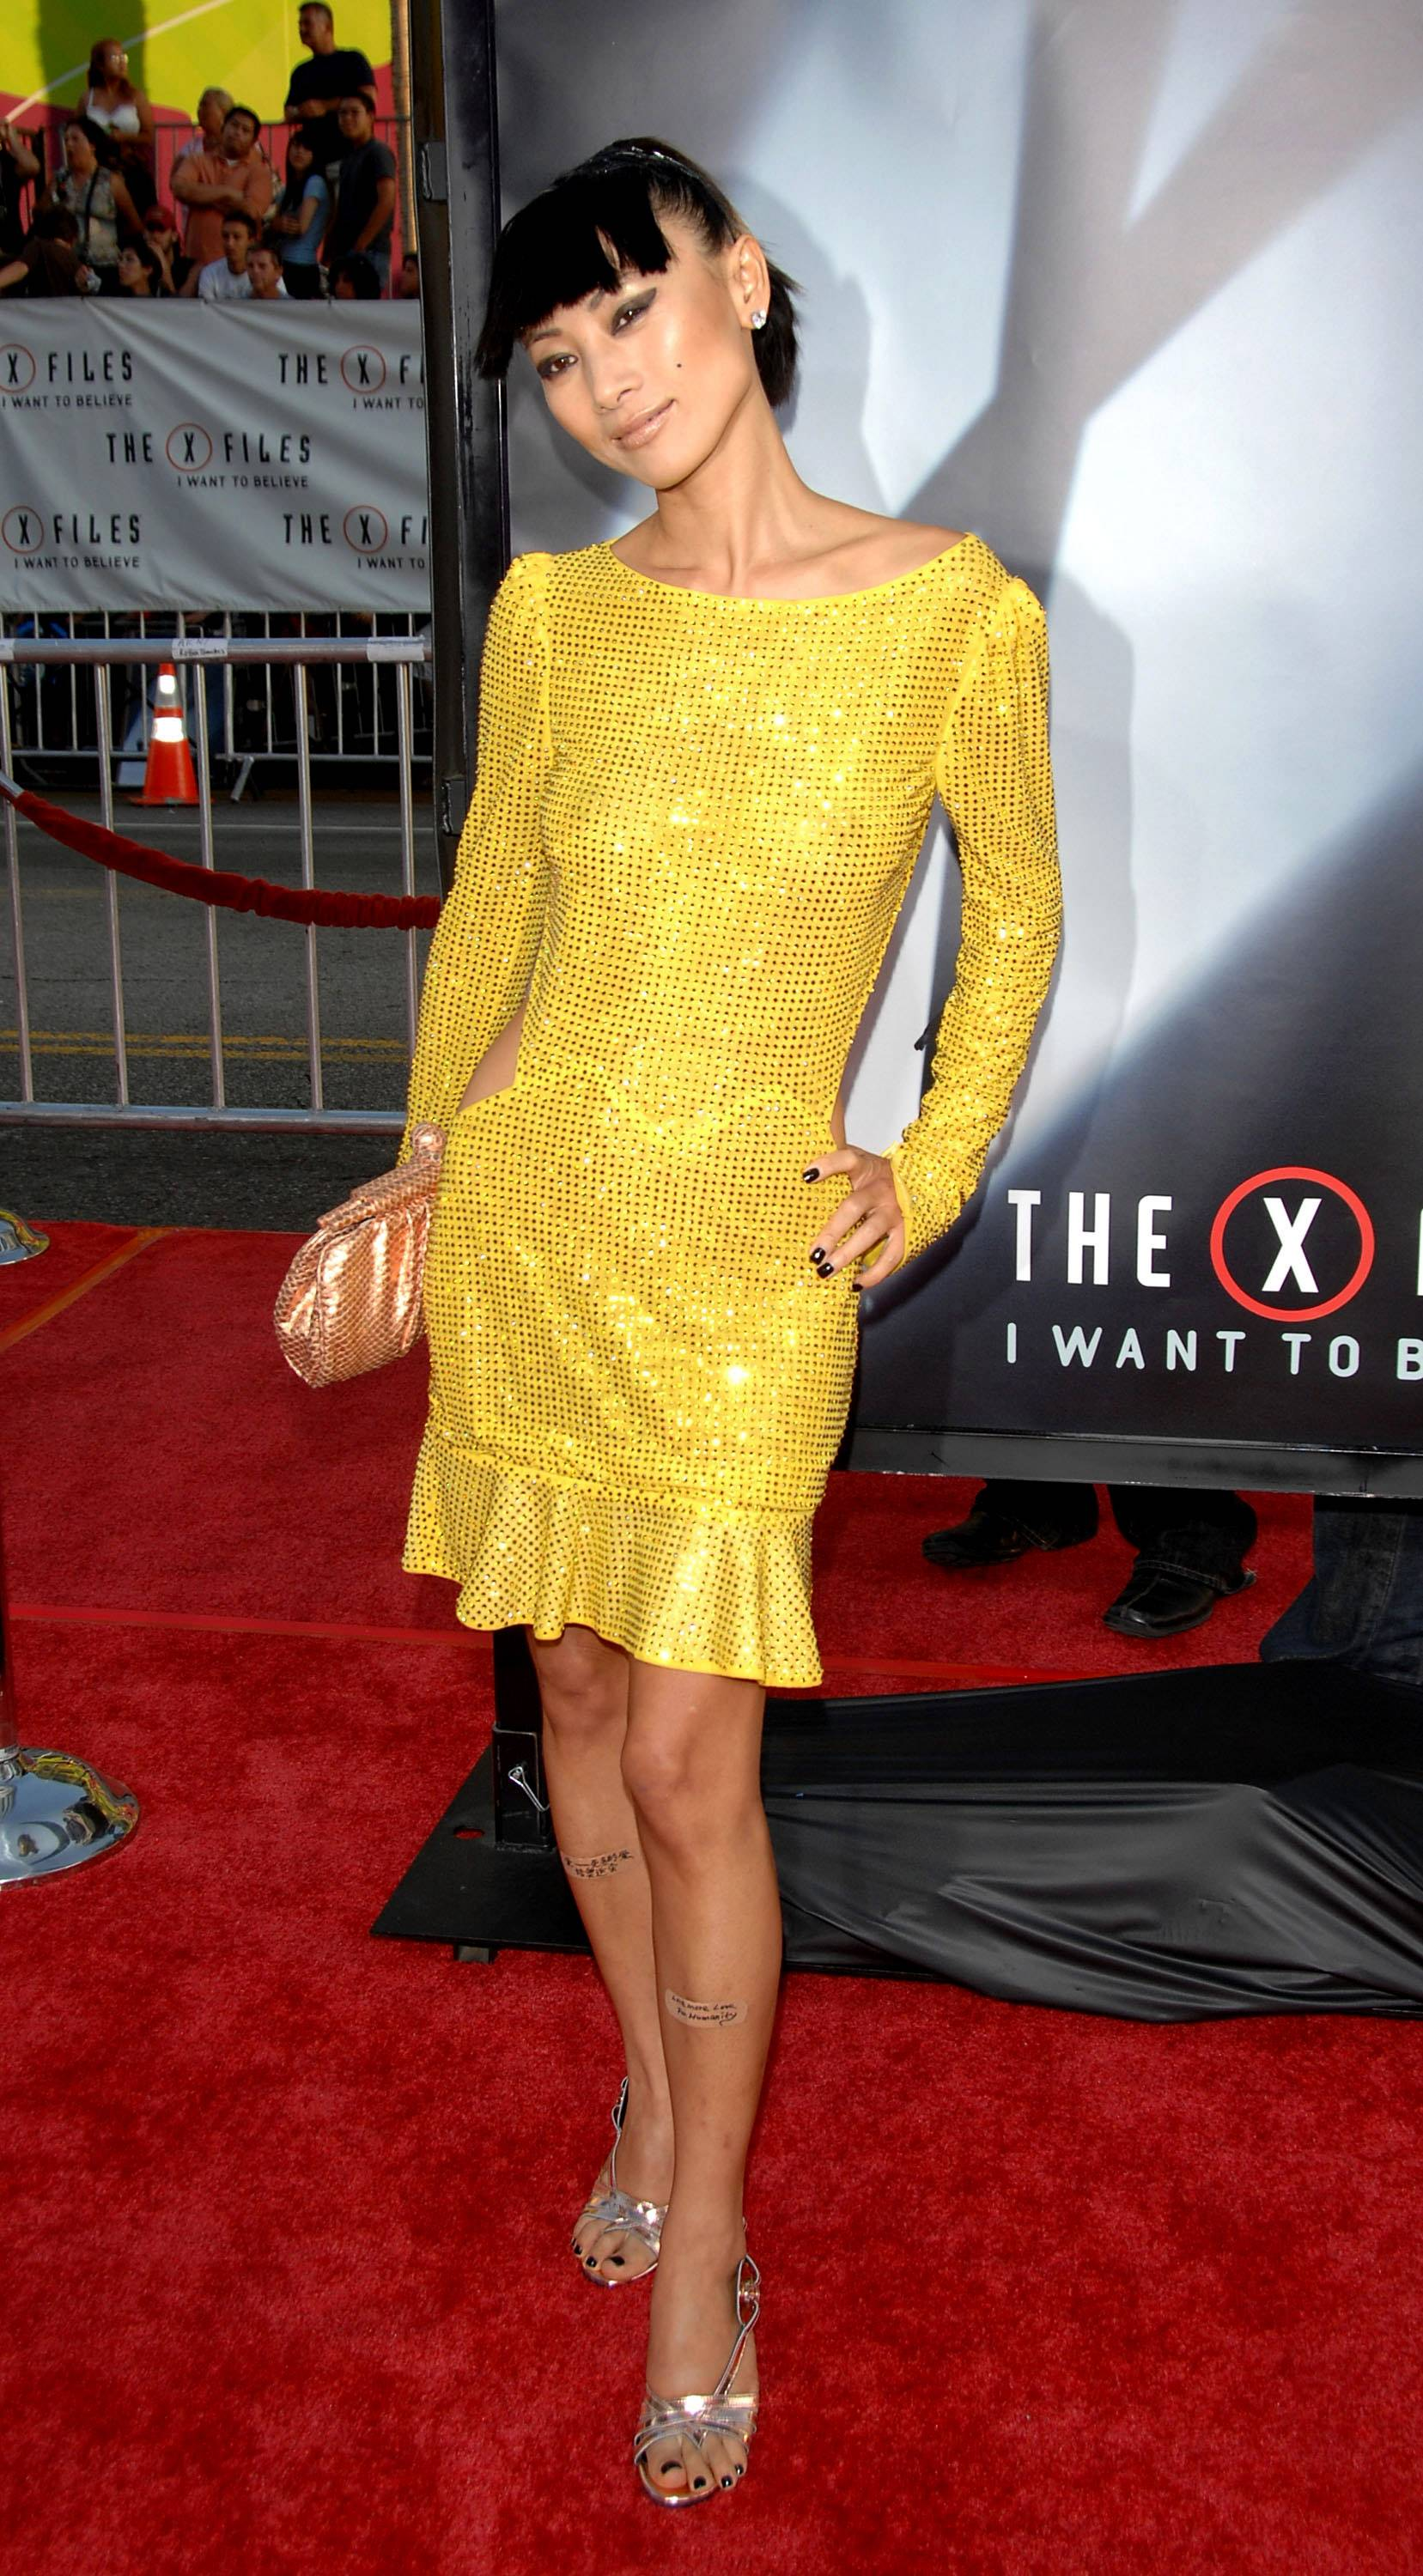 80183_Bai_Ling-The_X_Files_I_Want_To_Believe_World_Premiere_in_Hollywood-xnews2-s006_122_525lo.jpg